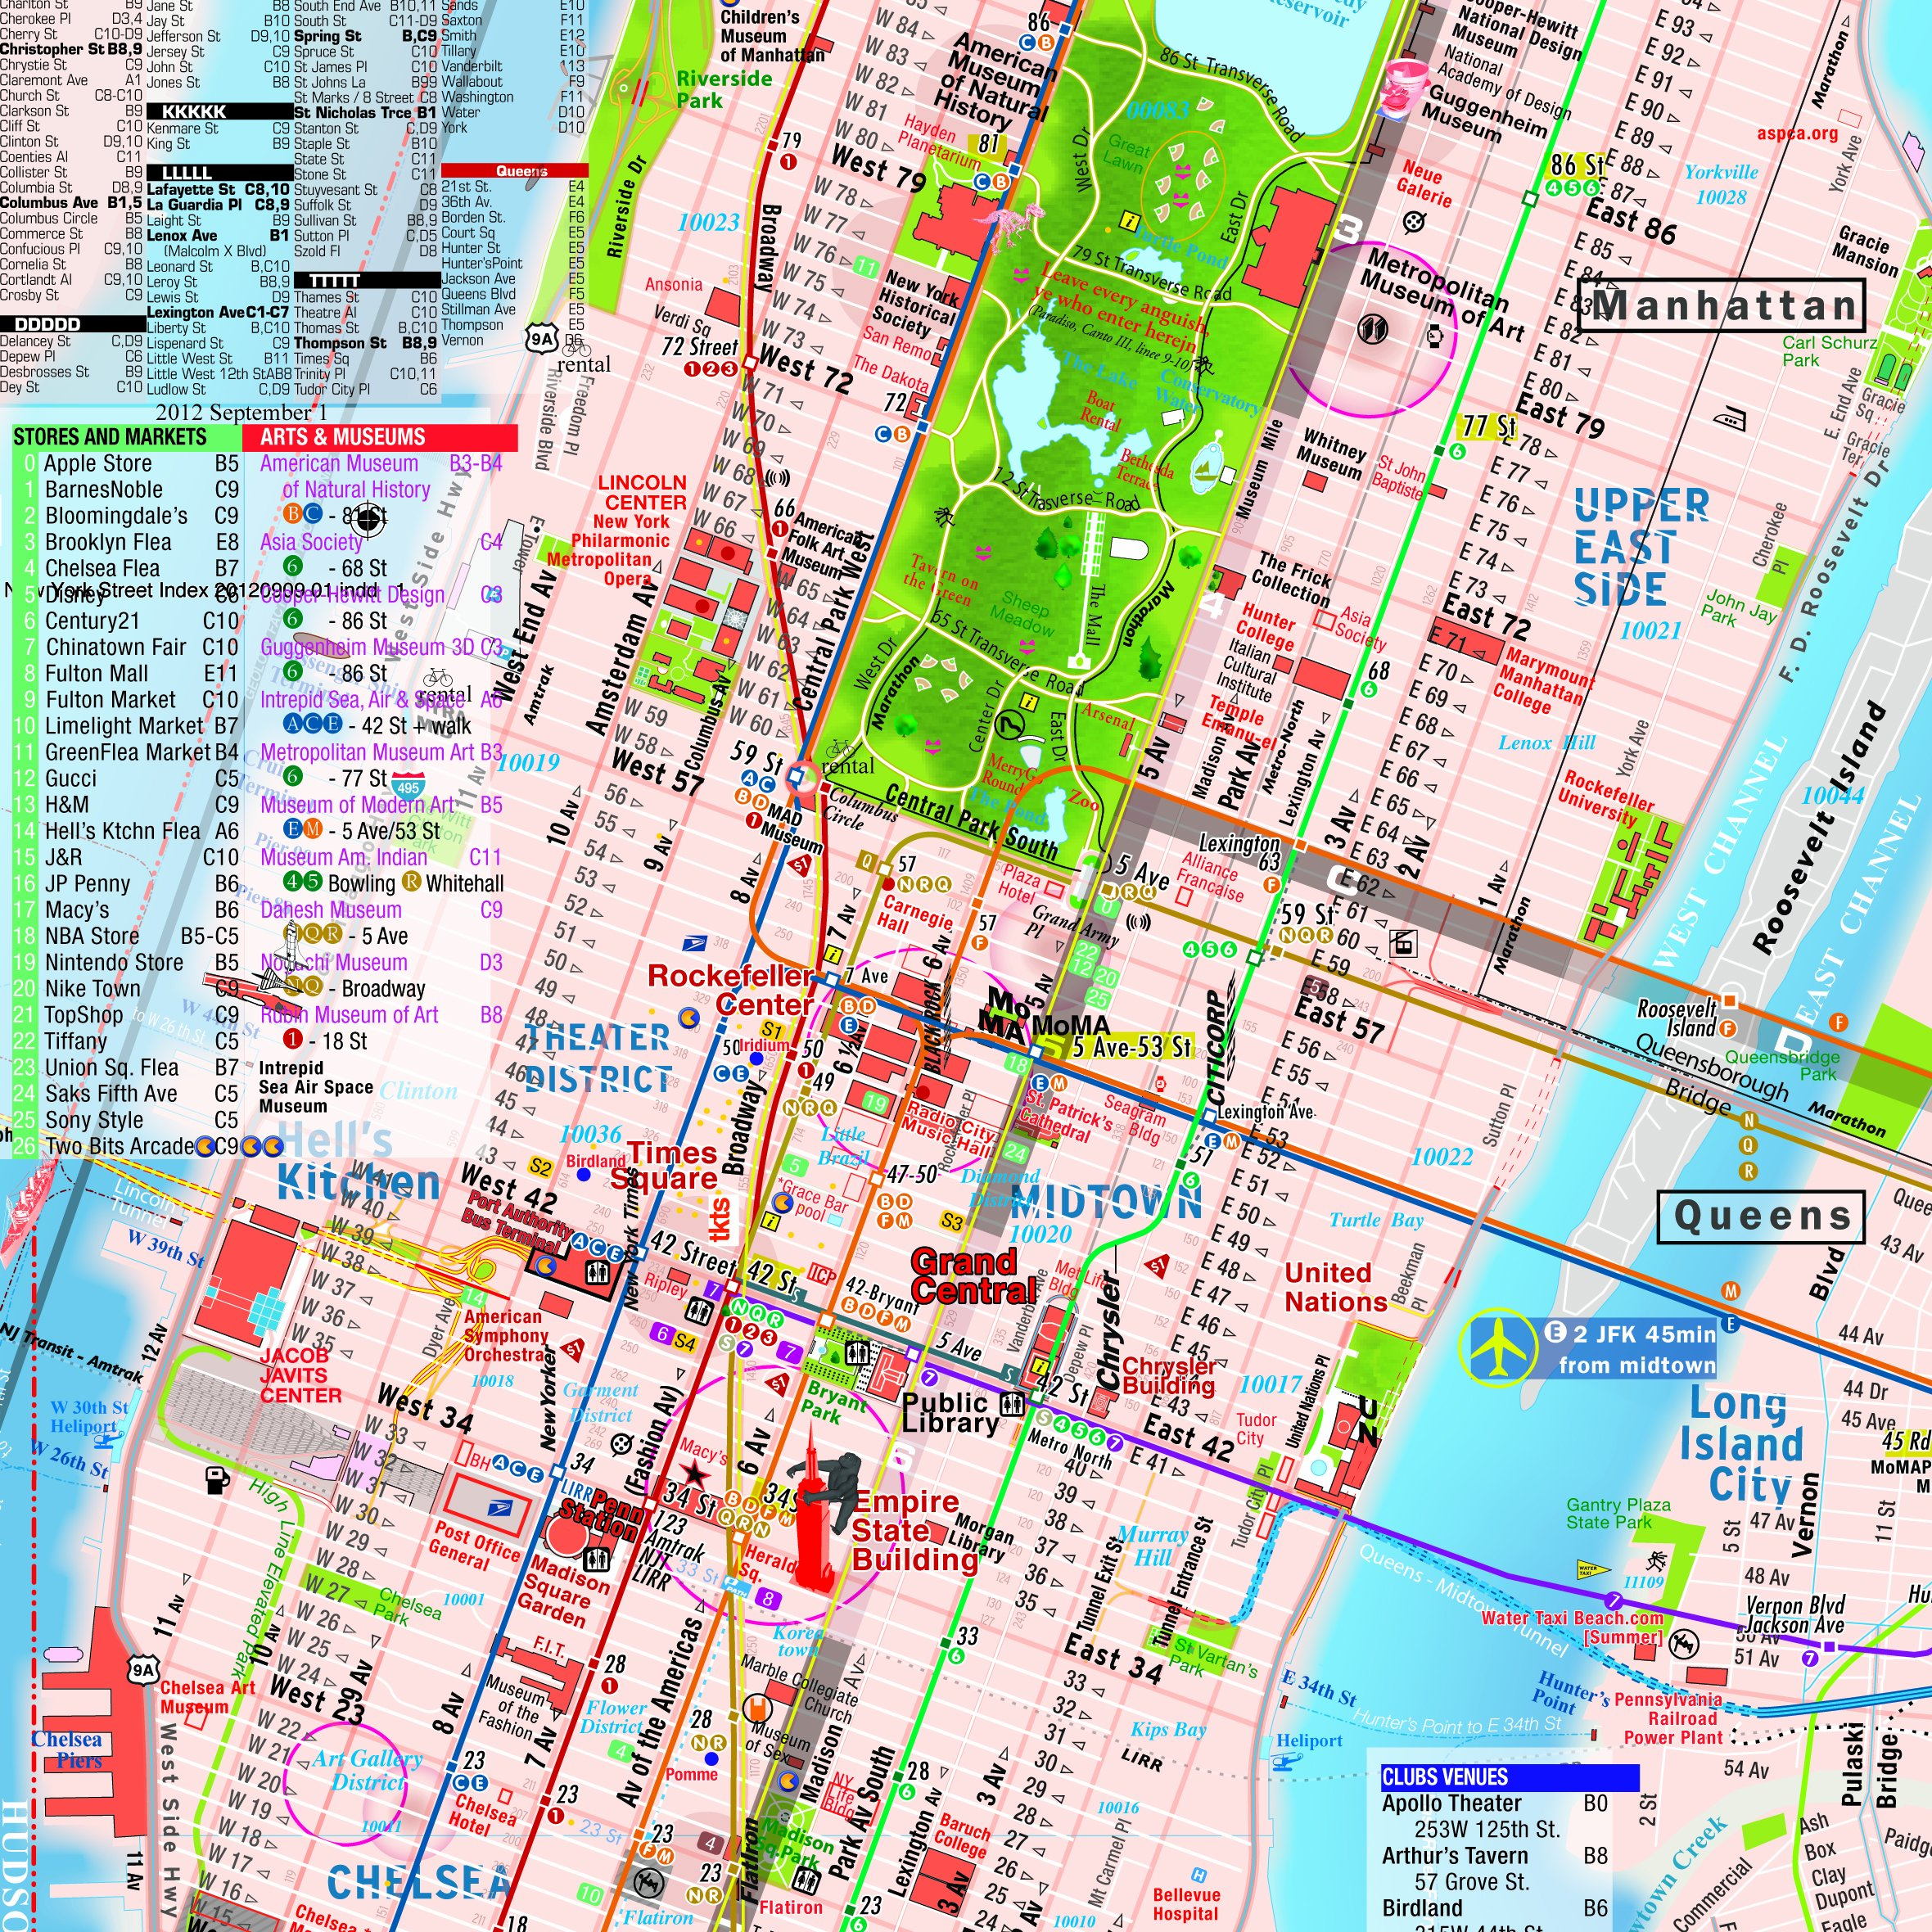 TerraMaps NYC Manhattan Street And Subway Map Waterproof AR - Nyc map